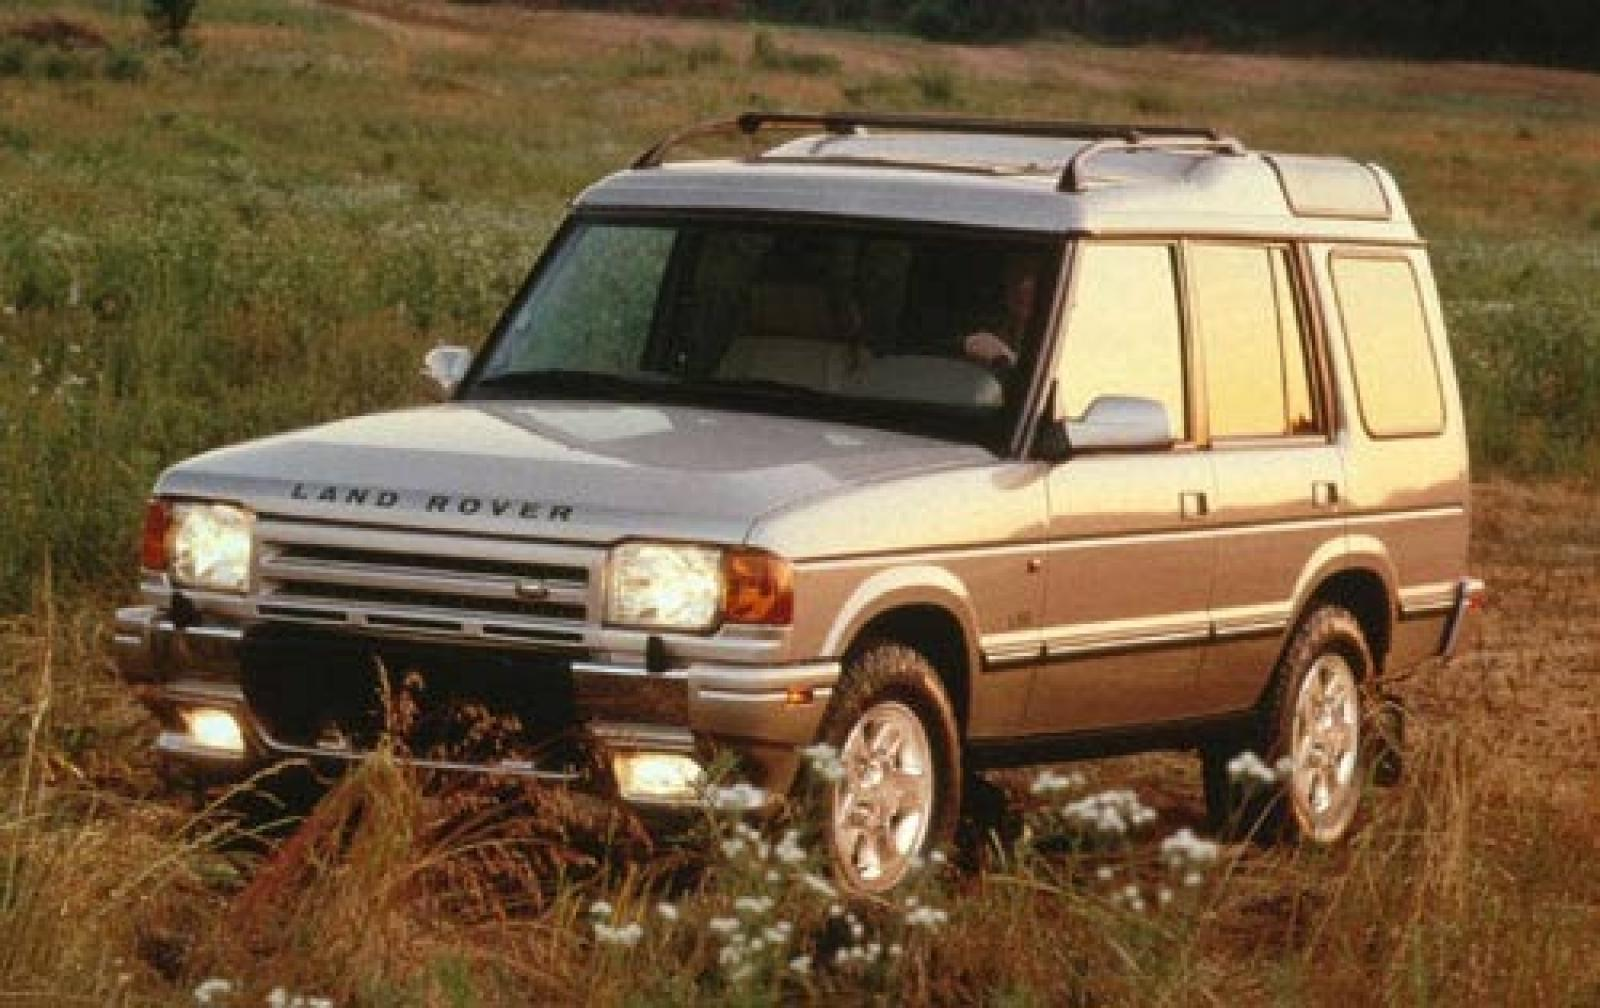 1998 land rover discovery information and photos zombiedrive. Black Bedroom Furniture Sets. Home Design Ideas